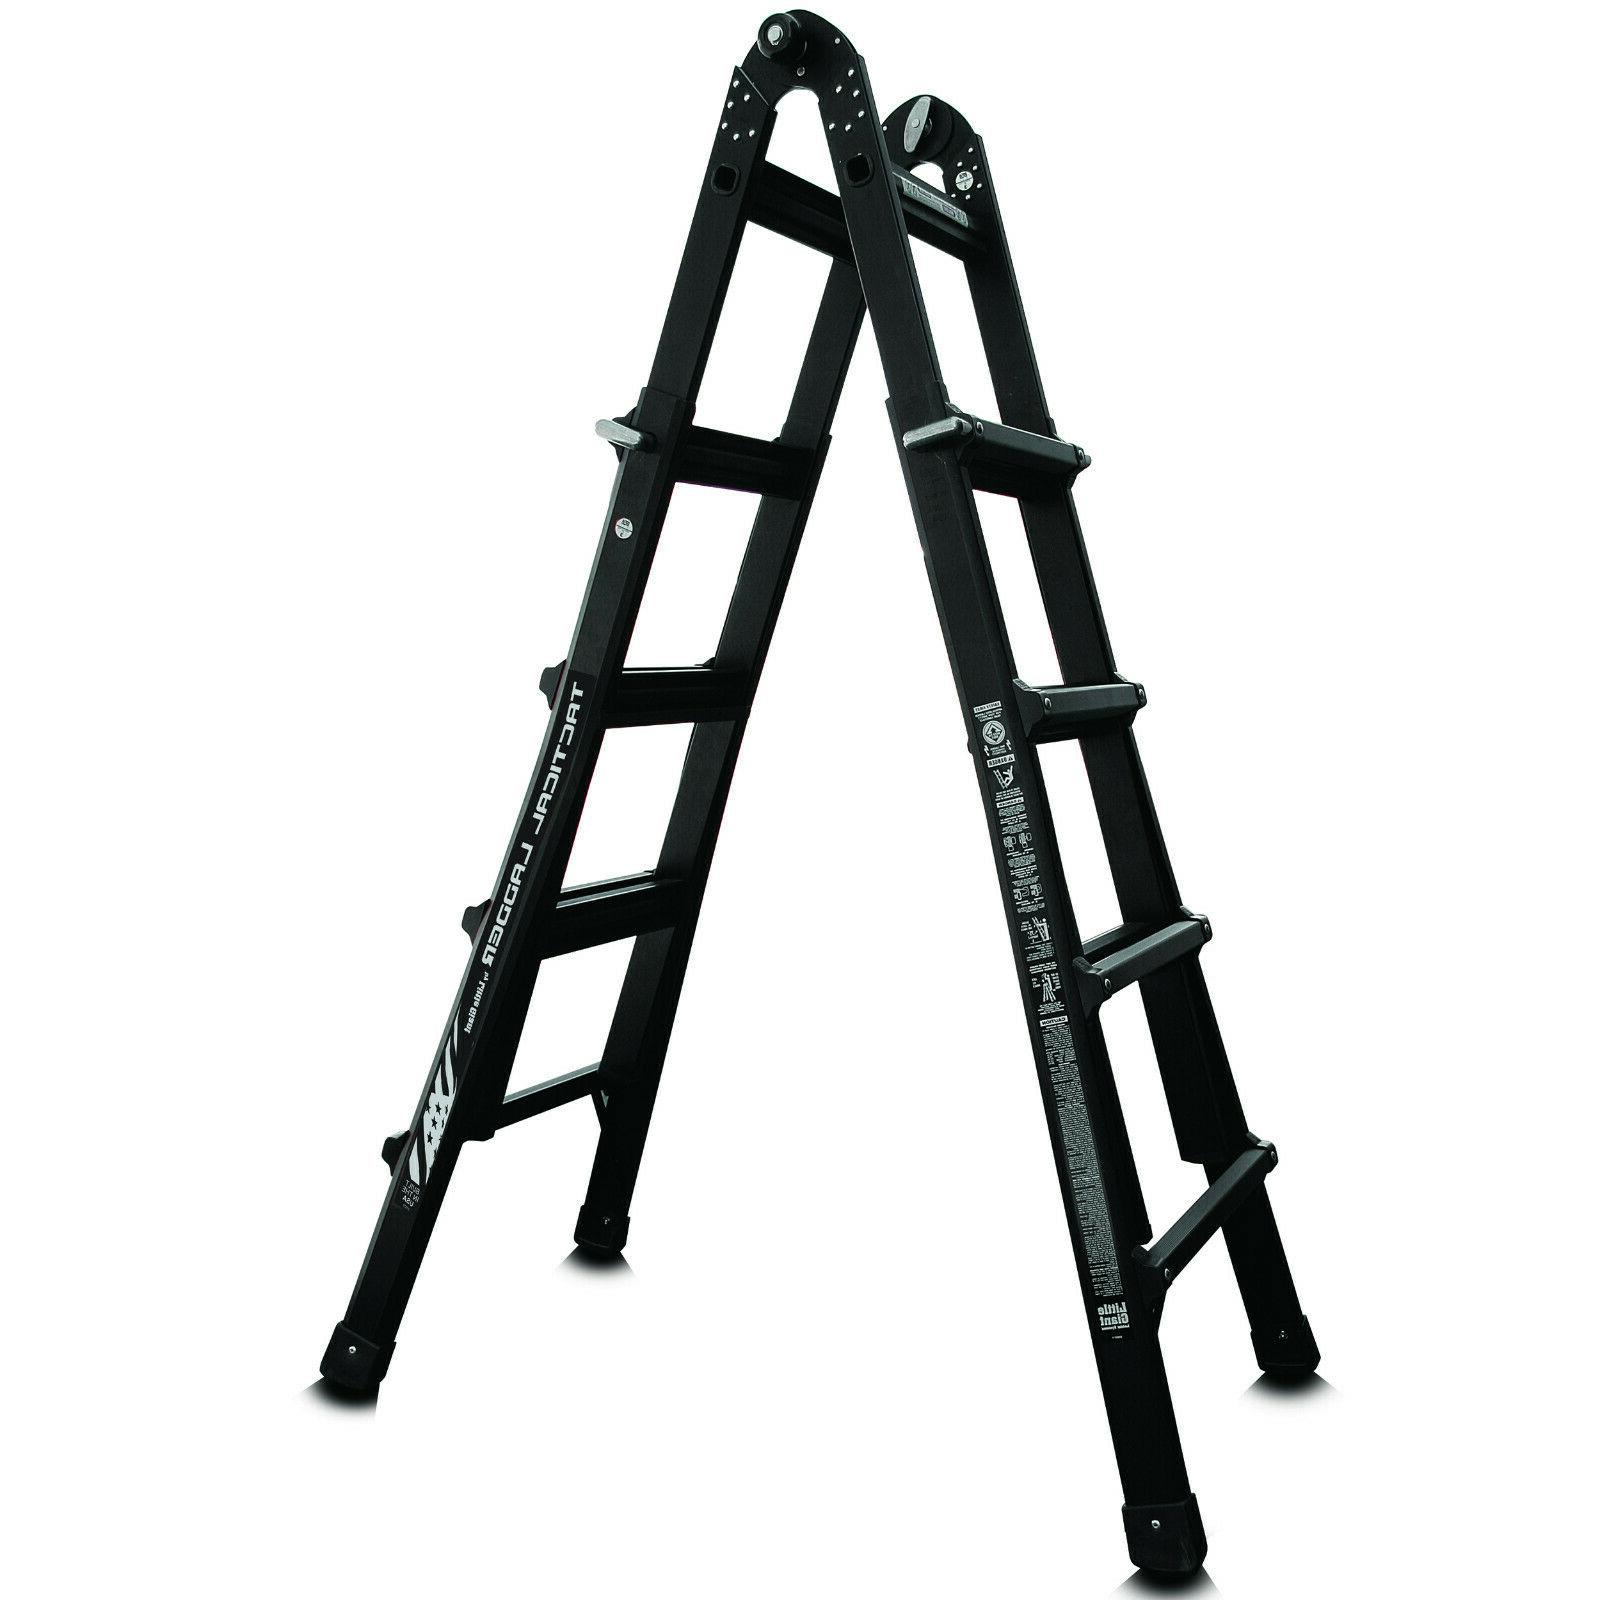 17 foot folding extension ladder extra heavy